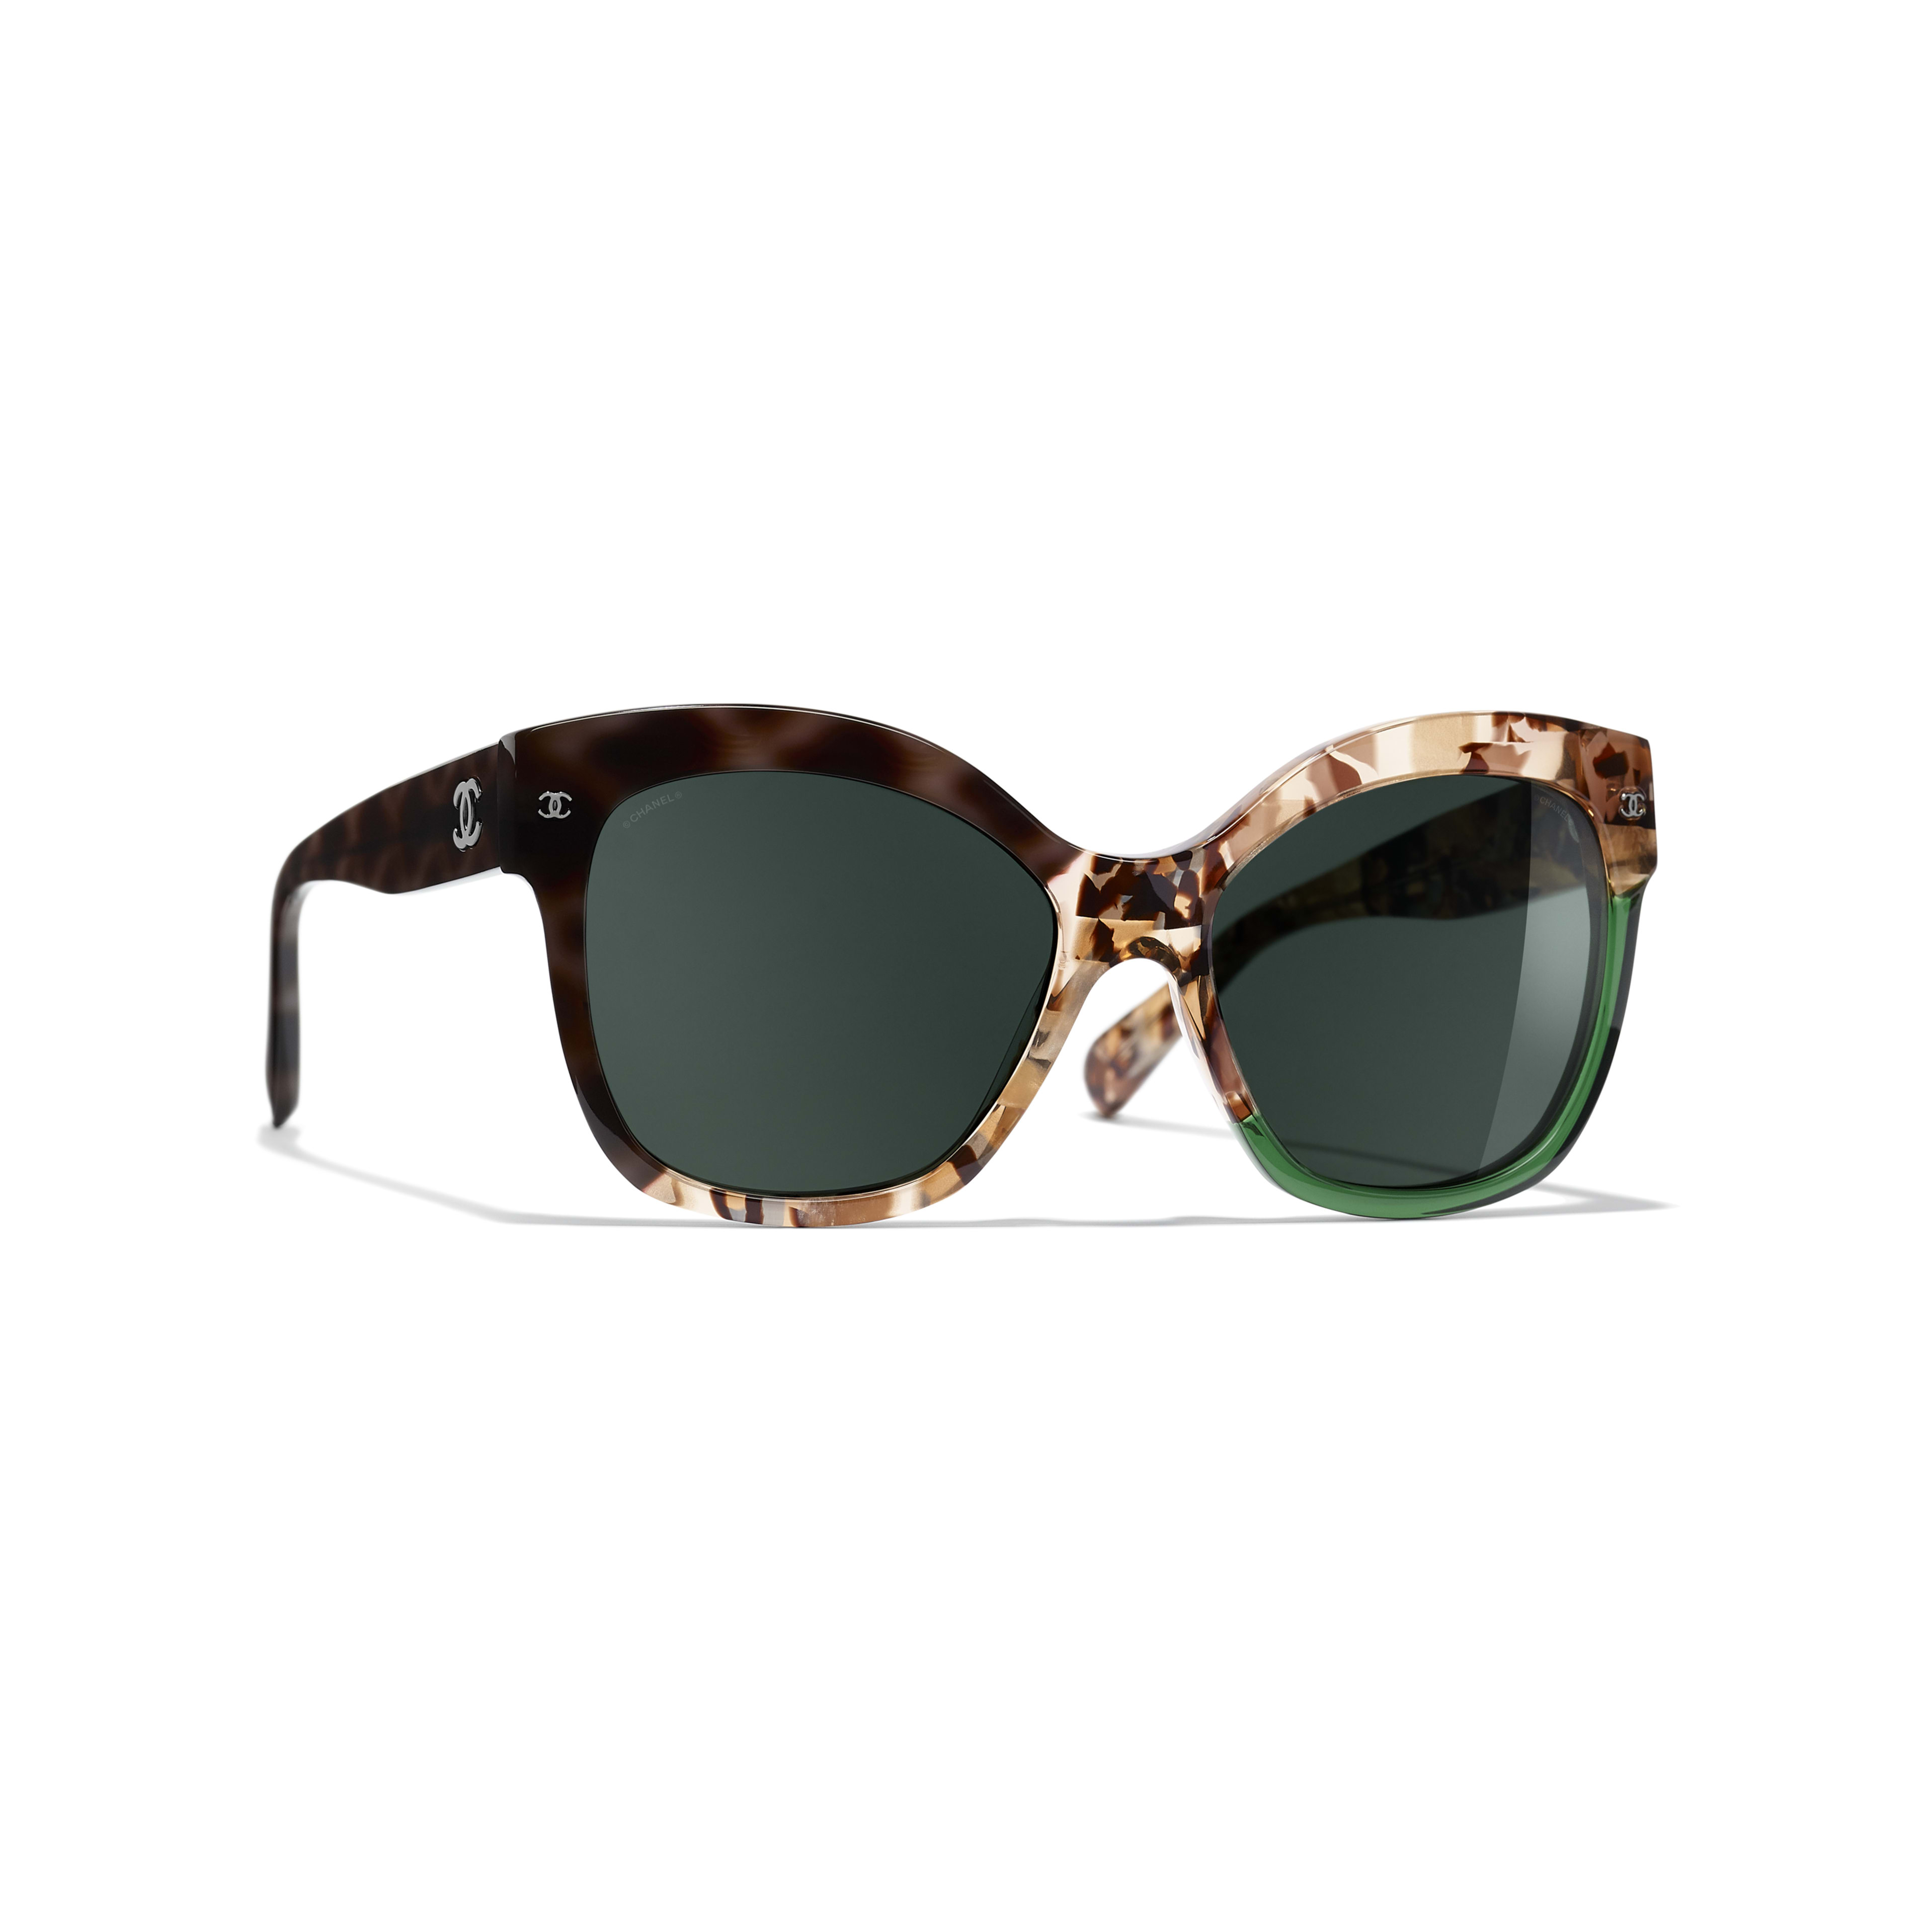 Butterfly Sunglasses - Dark Tortoise & Green - Acetate - CHANEL - Default view - see standard sized version